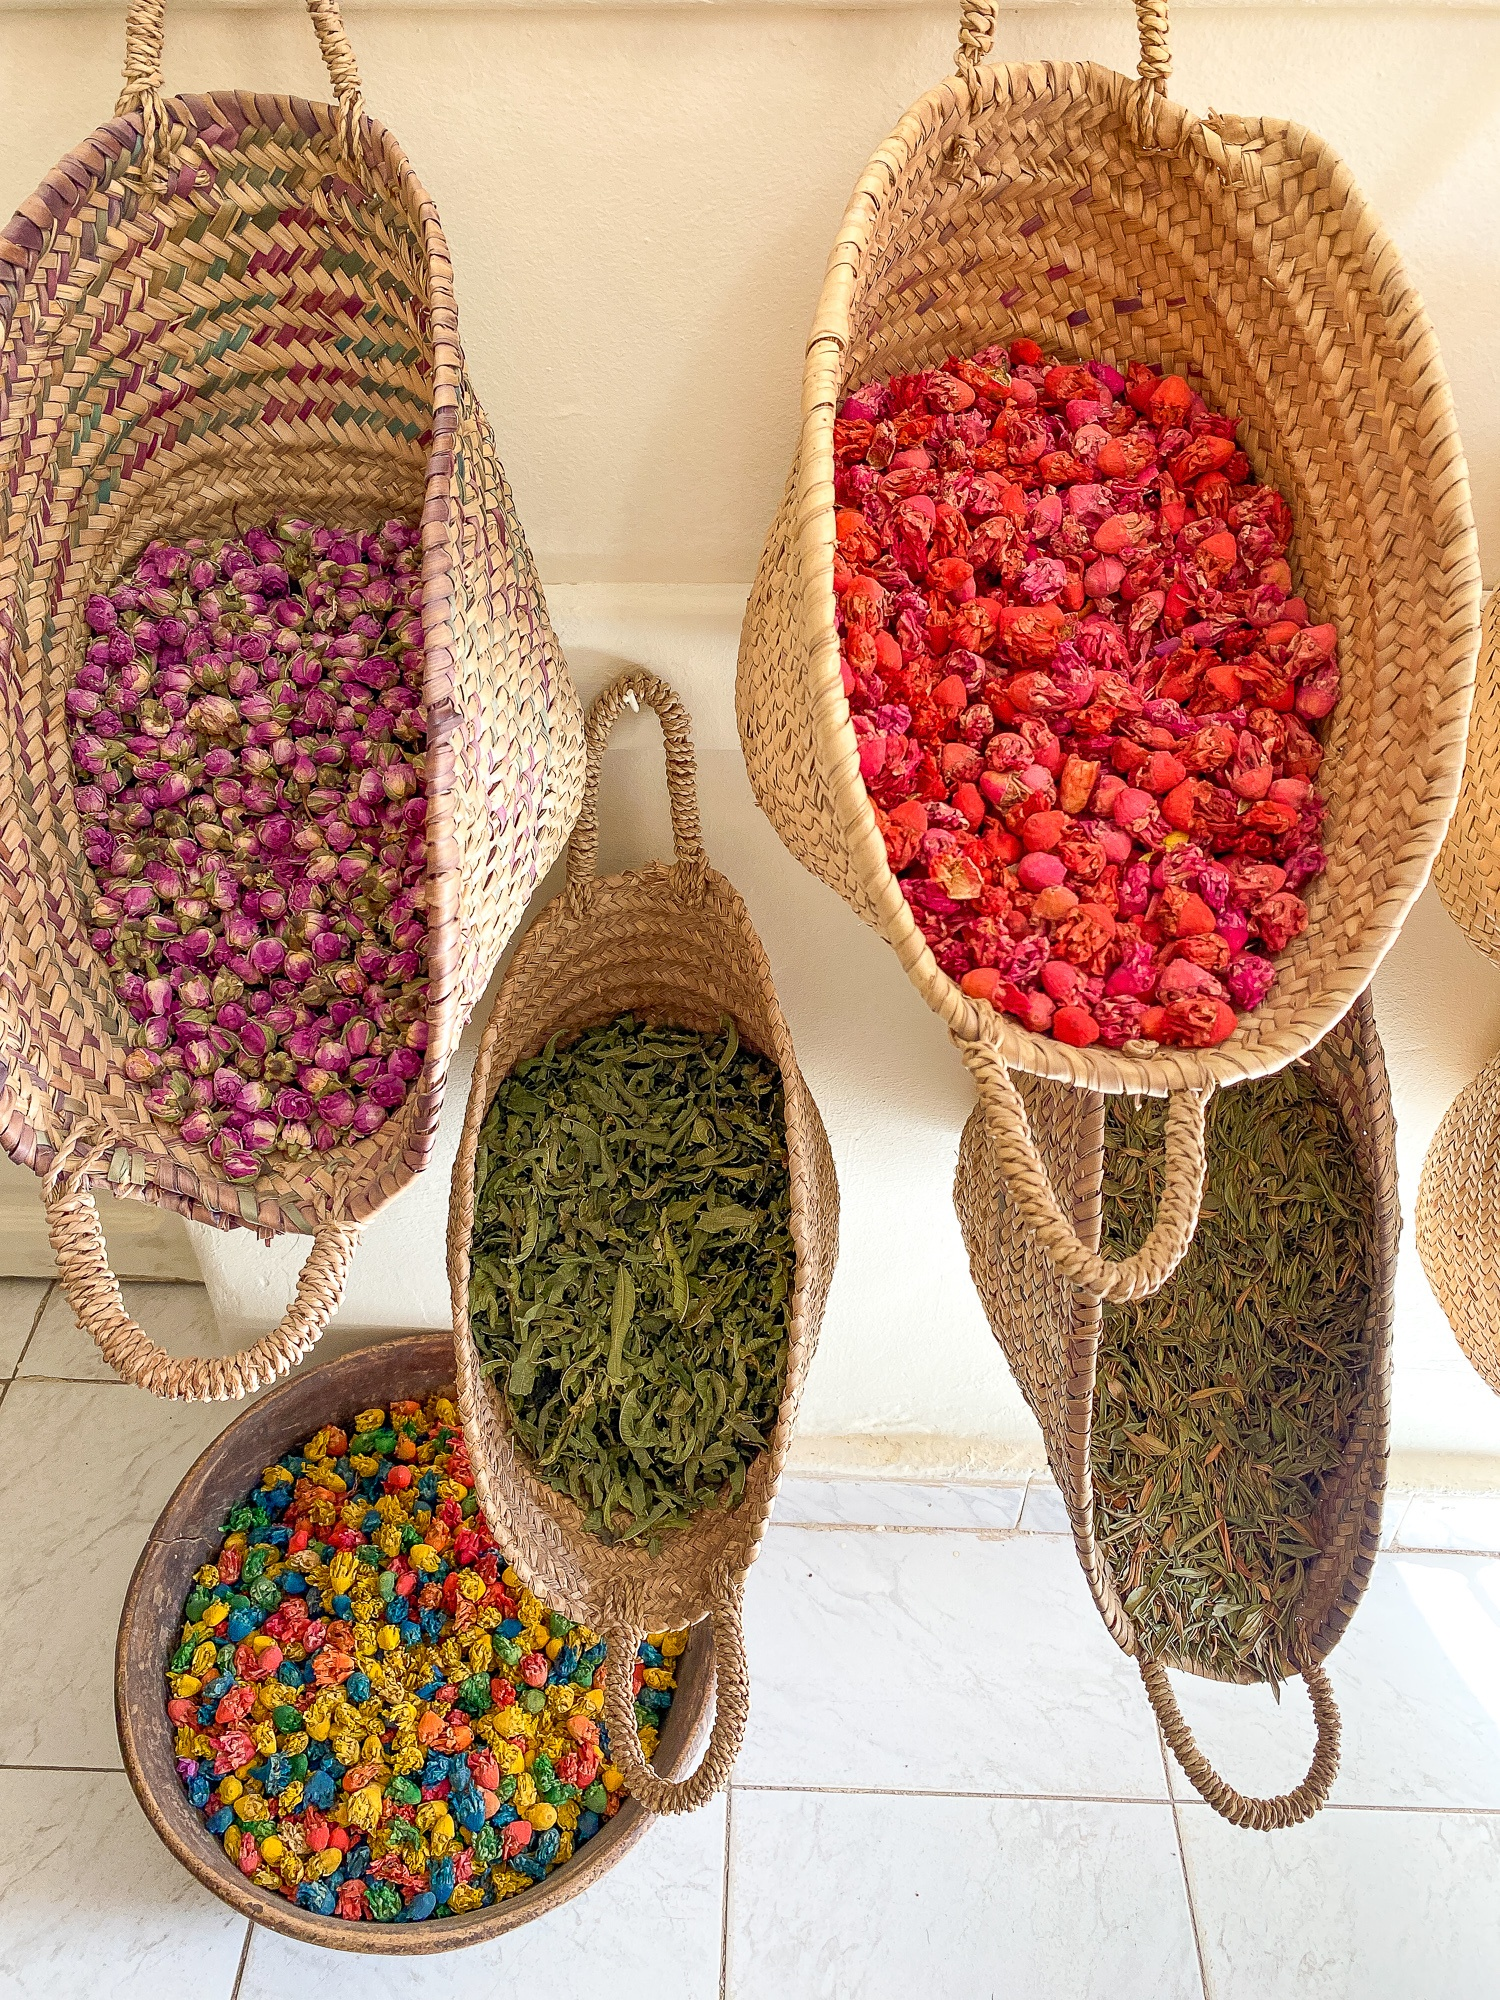 Herbs and spices on display at La Caravane des Épices in Ouarzazate, Morocco